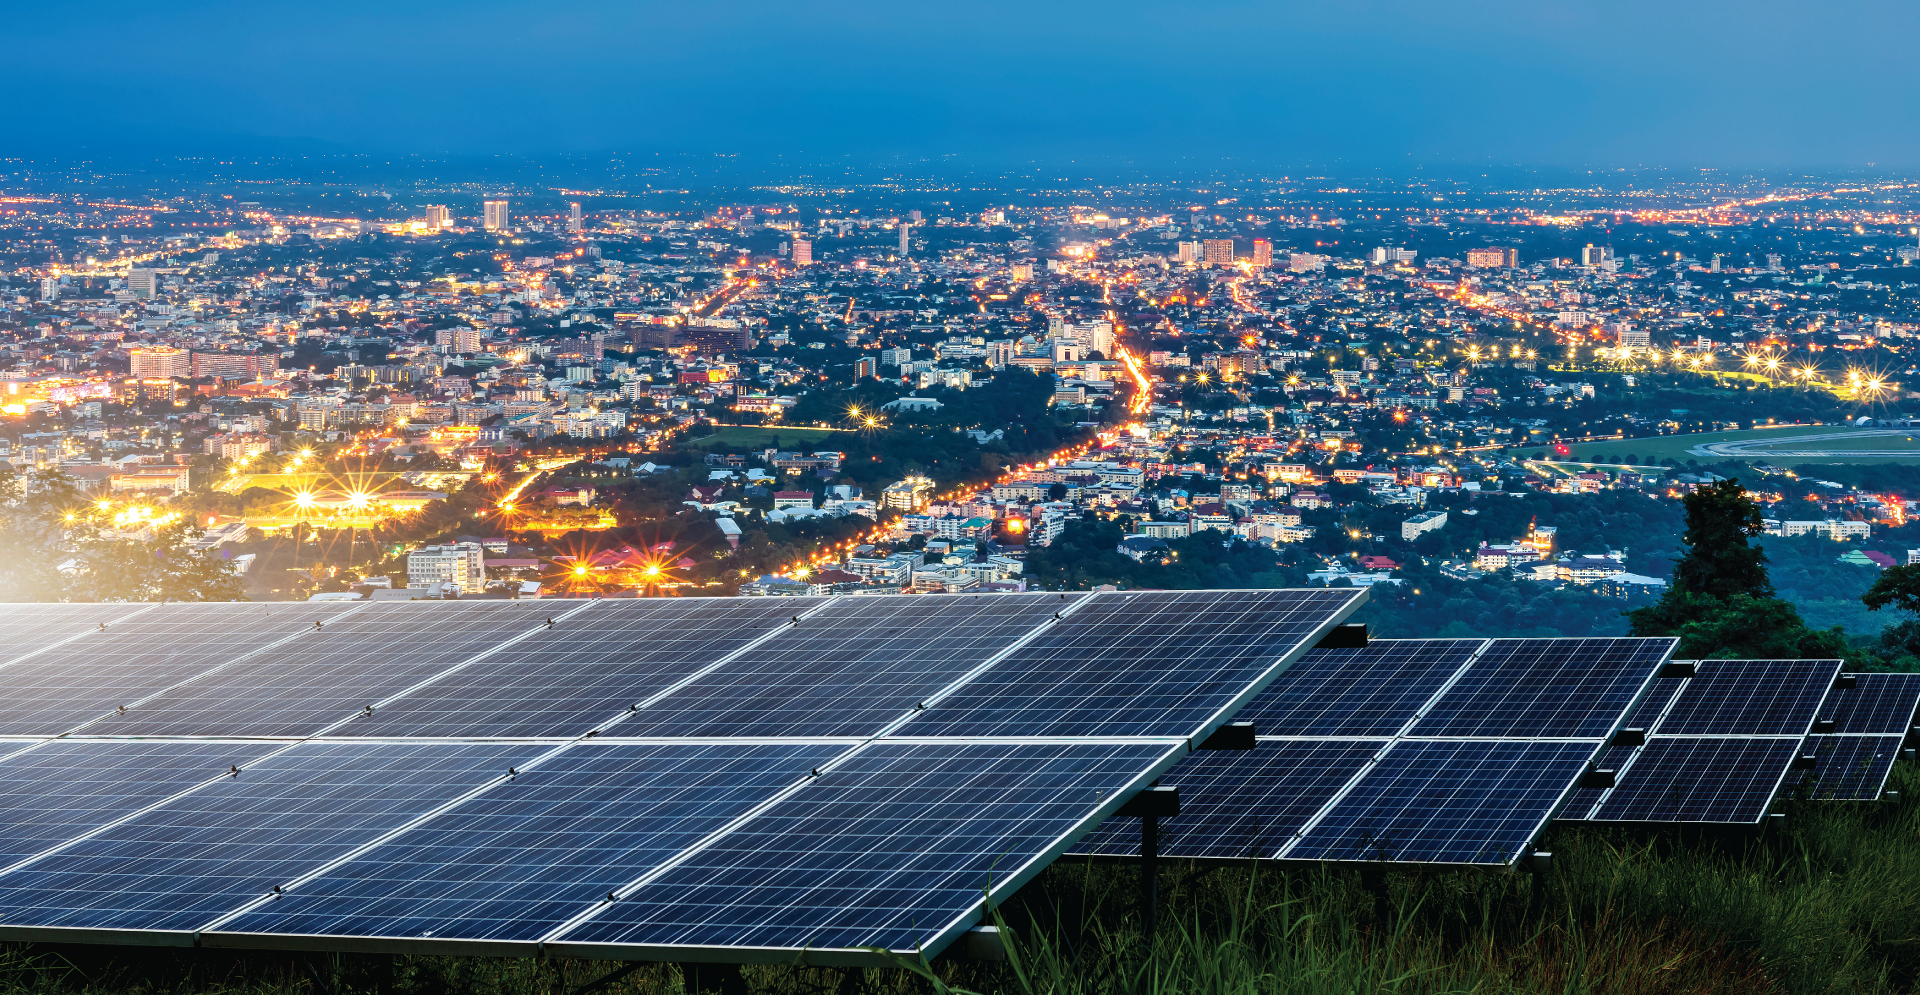 Solar panels on mountain top with overlooking city night lights